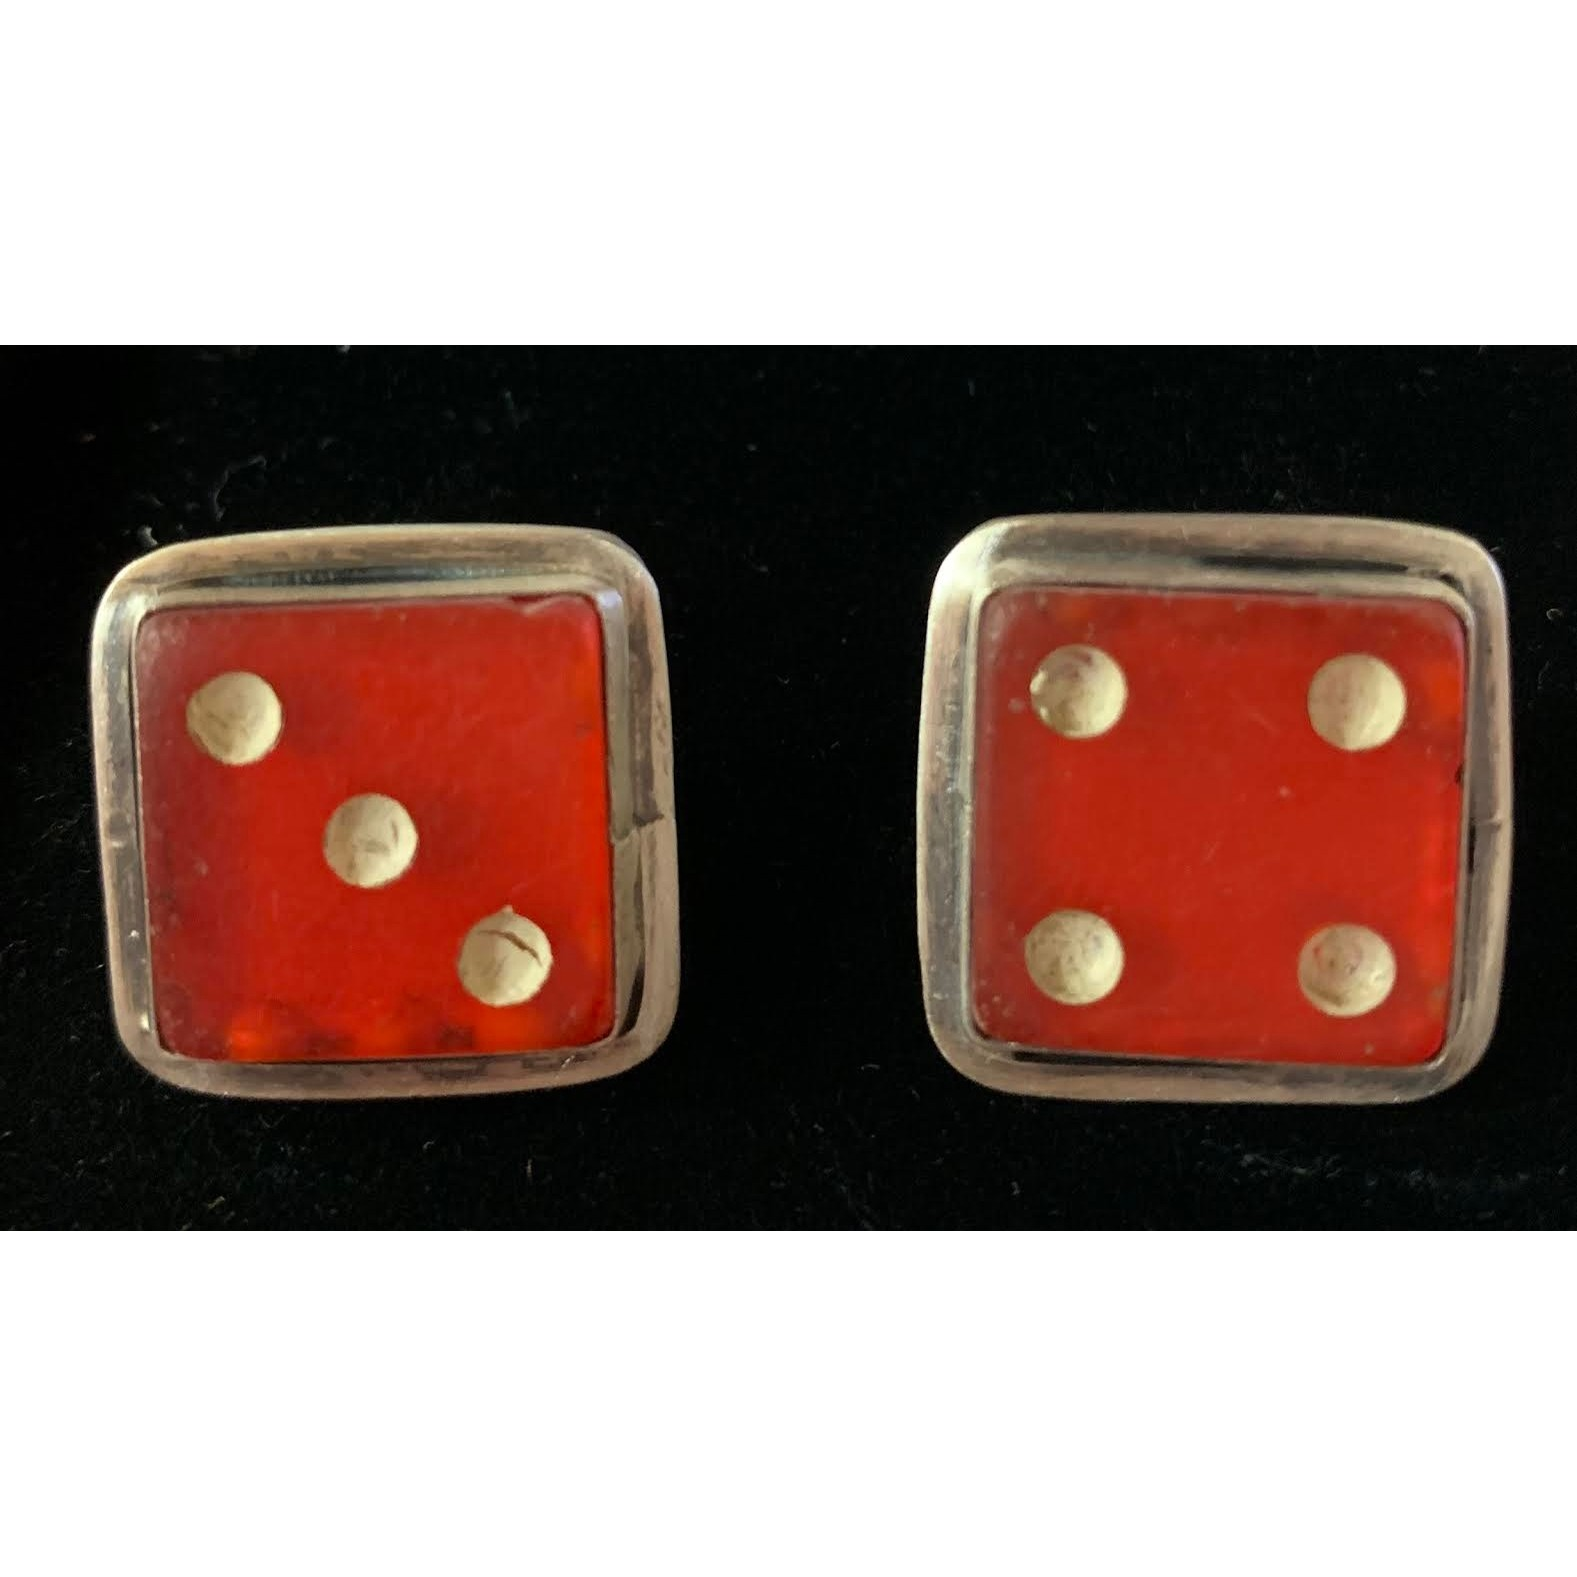 Large Vintage Dice Cuffs